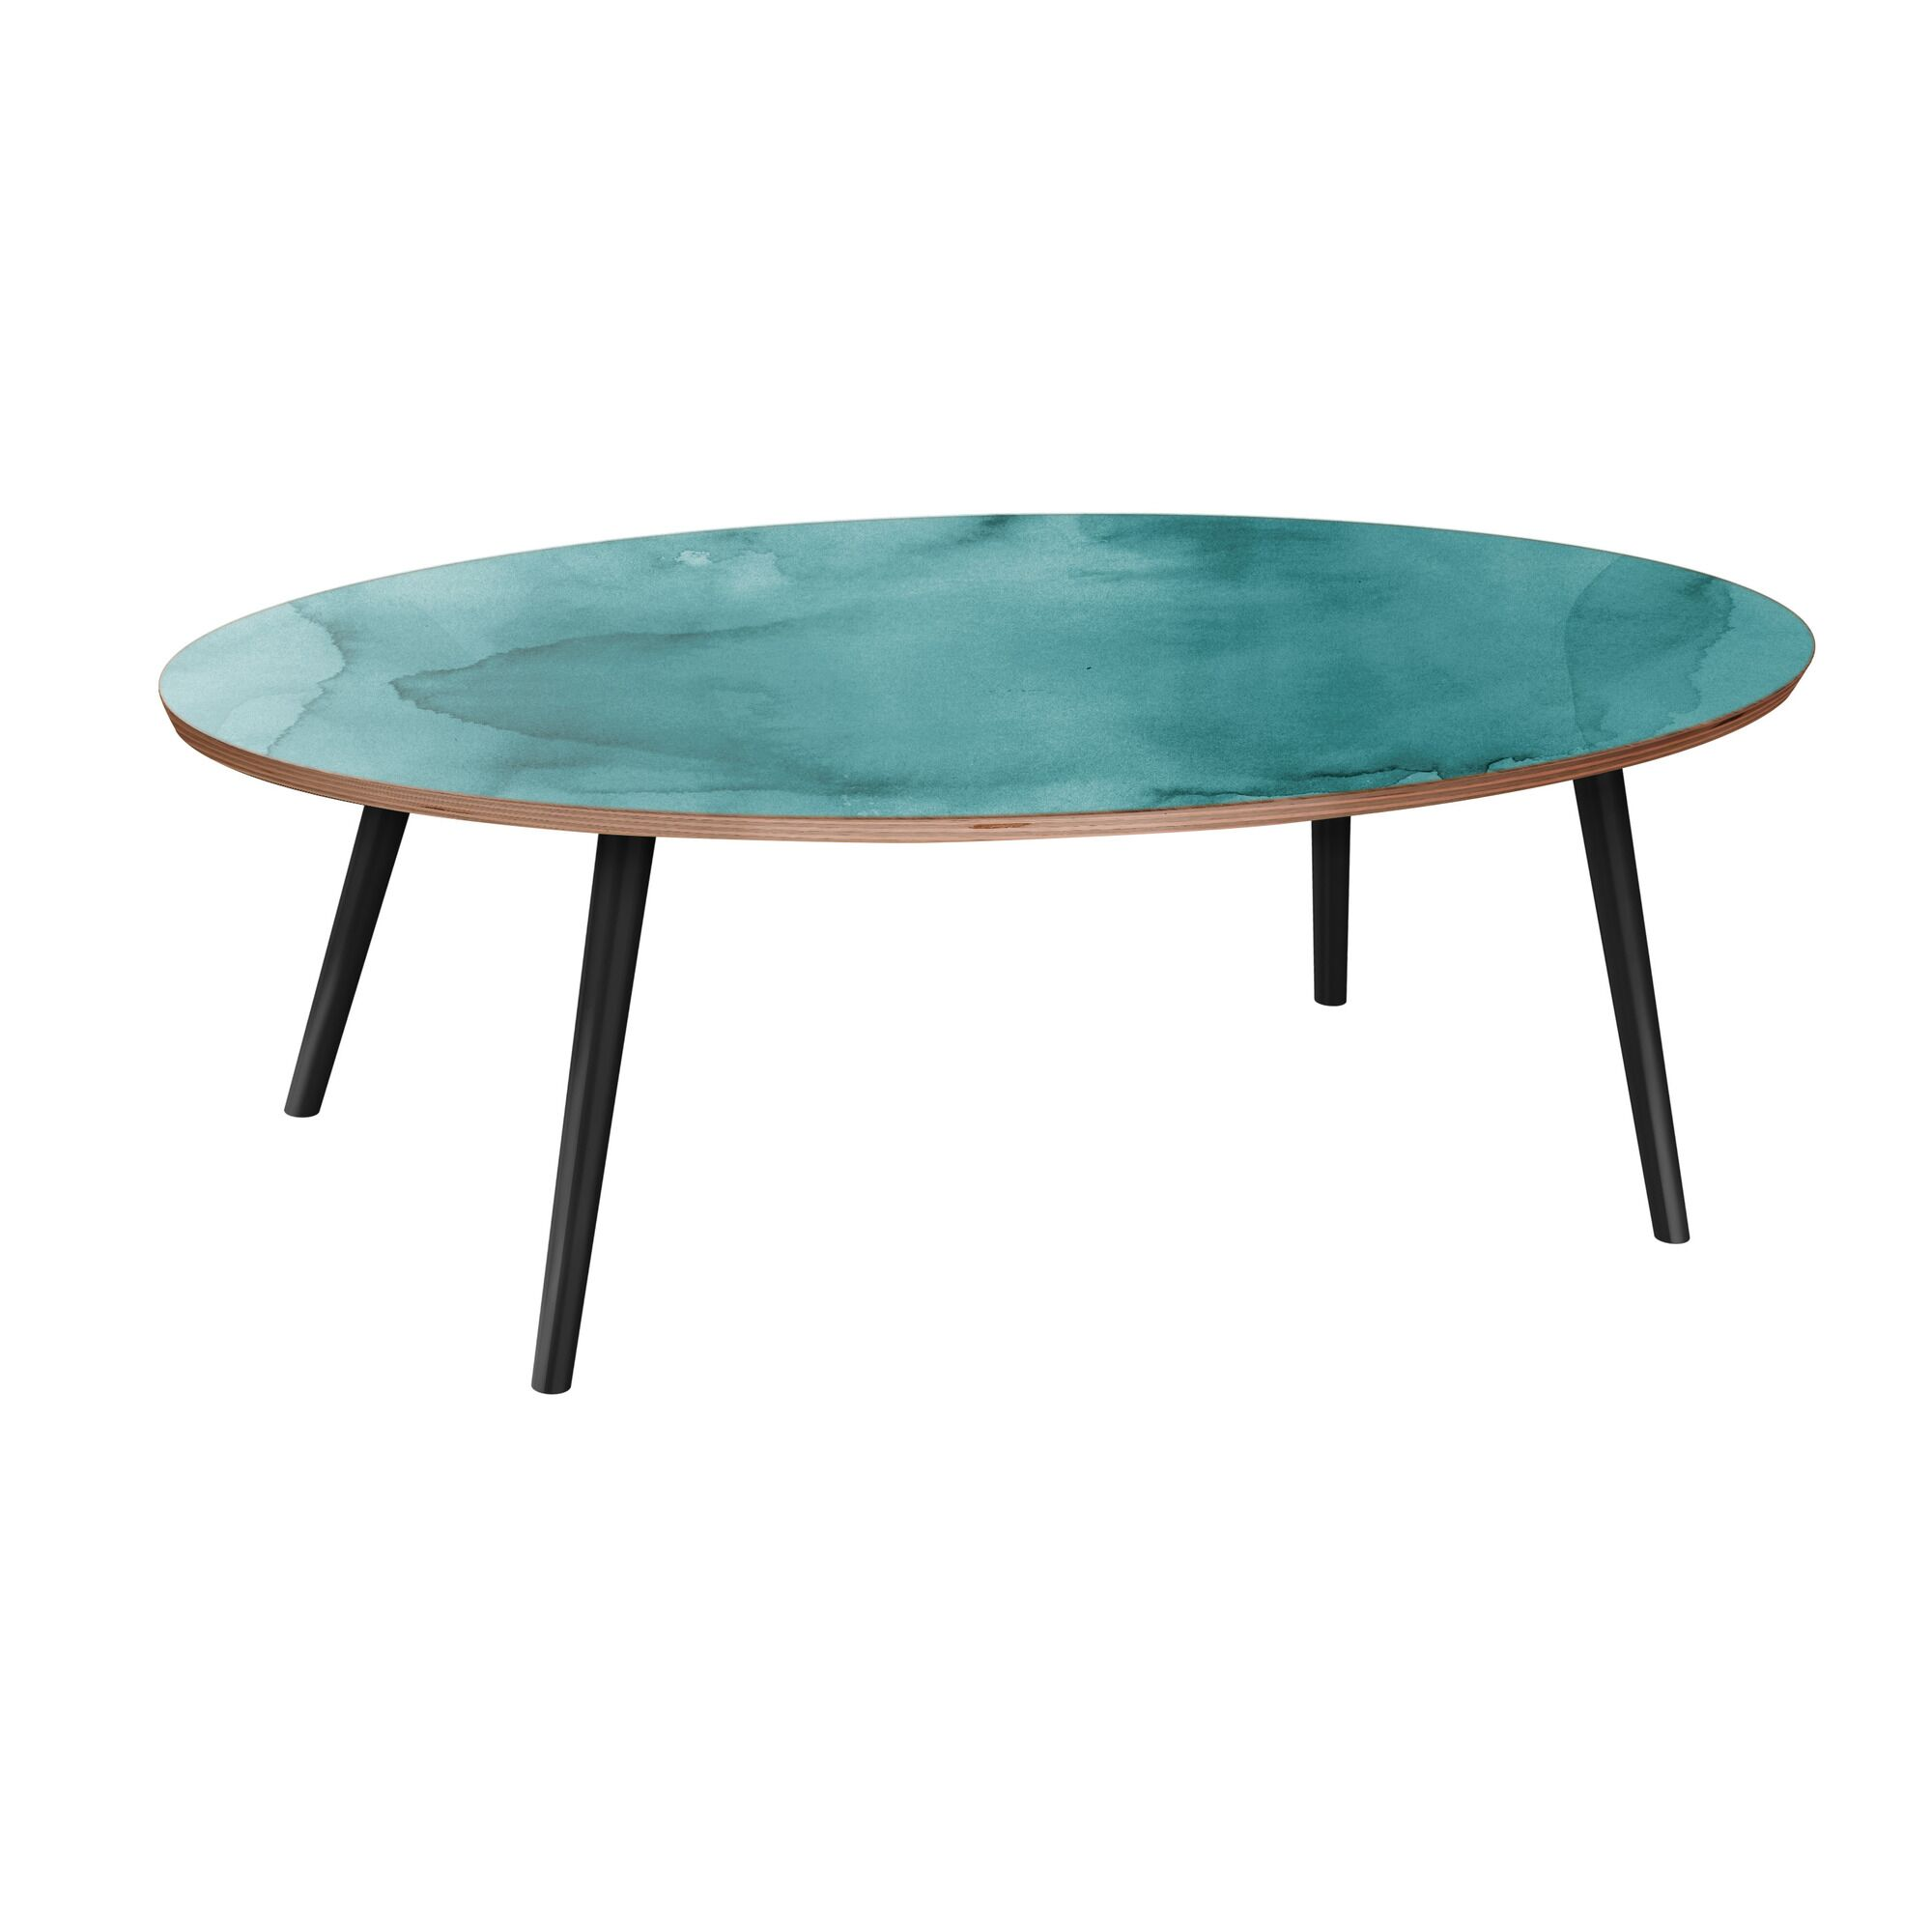 Rayes Coffee Table Table Base Color: Black, Table Top Boarder Color: Walnut, Table Top Color: Pink